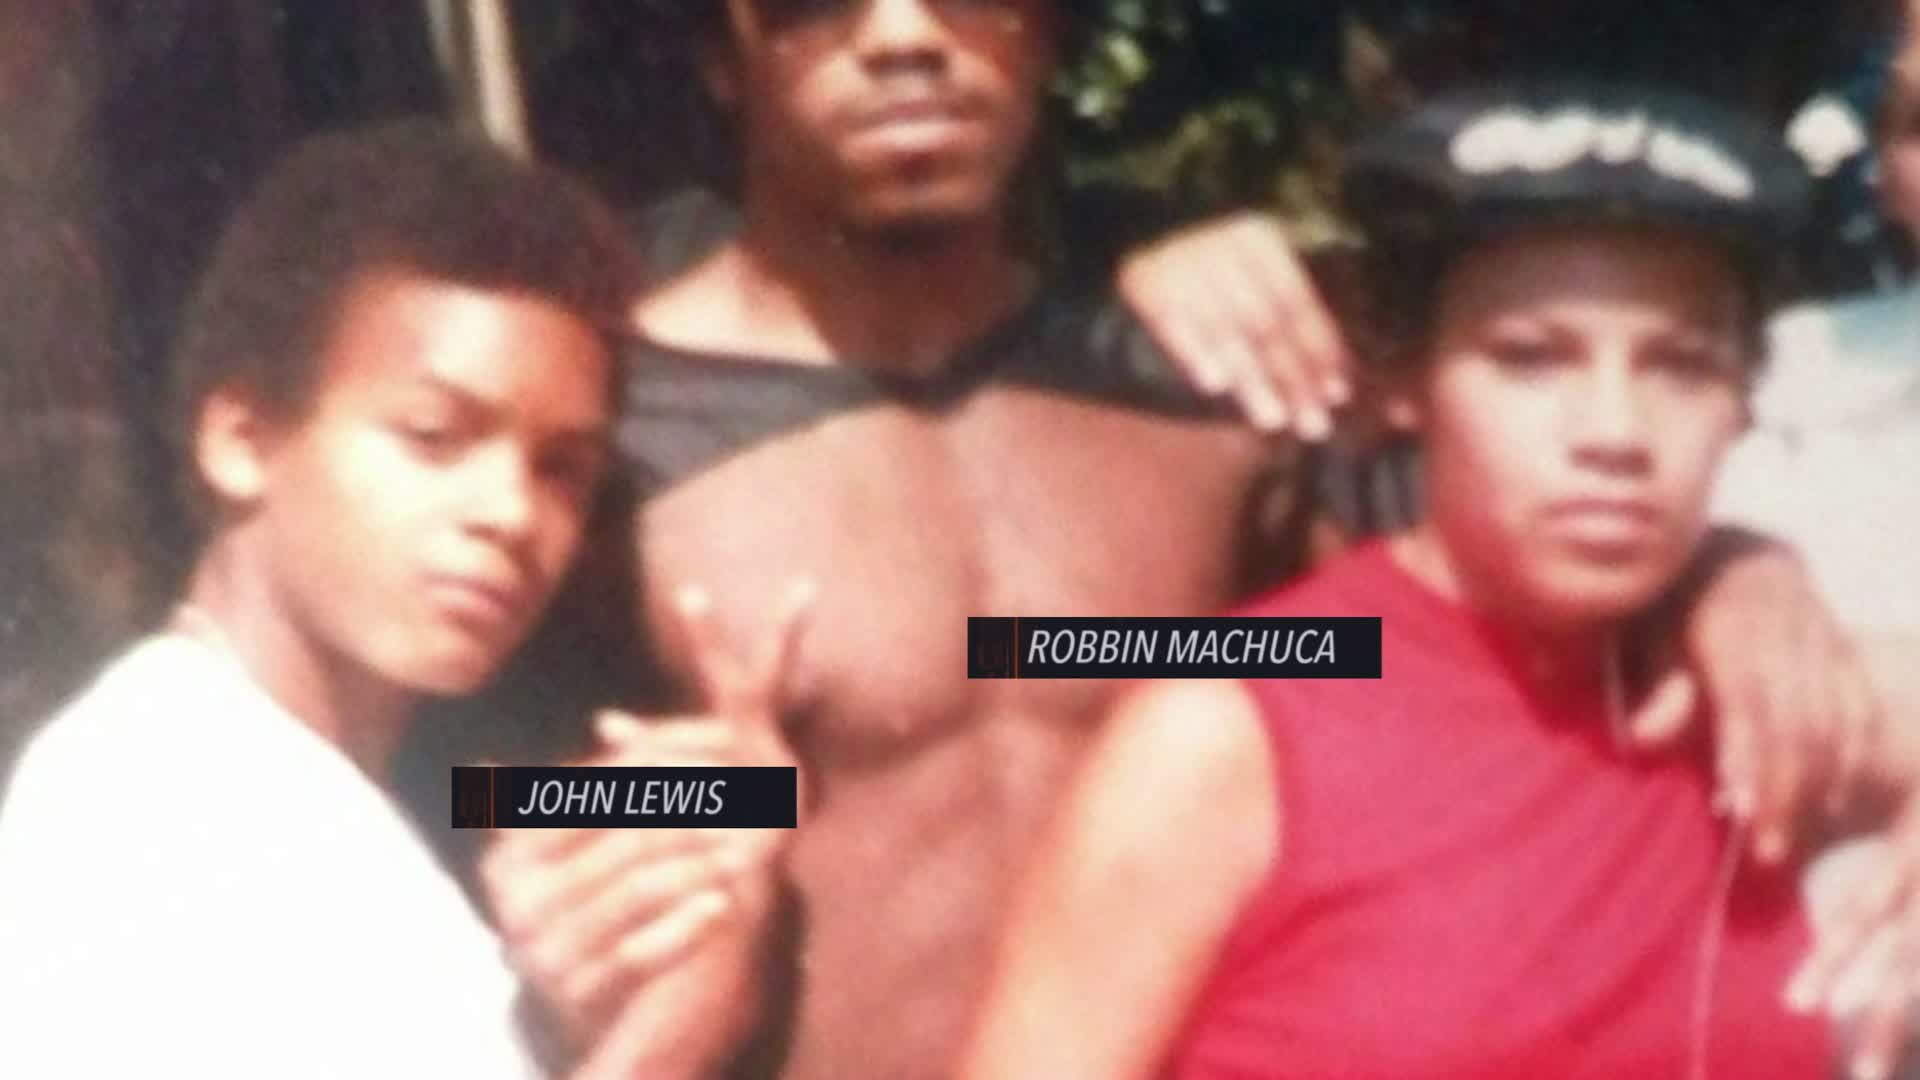 John Lewis And Robbin Machuca Grew Up Hard In South Central L.A.